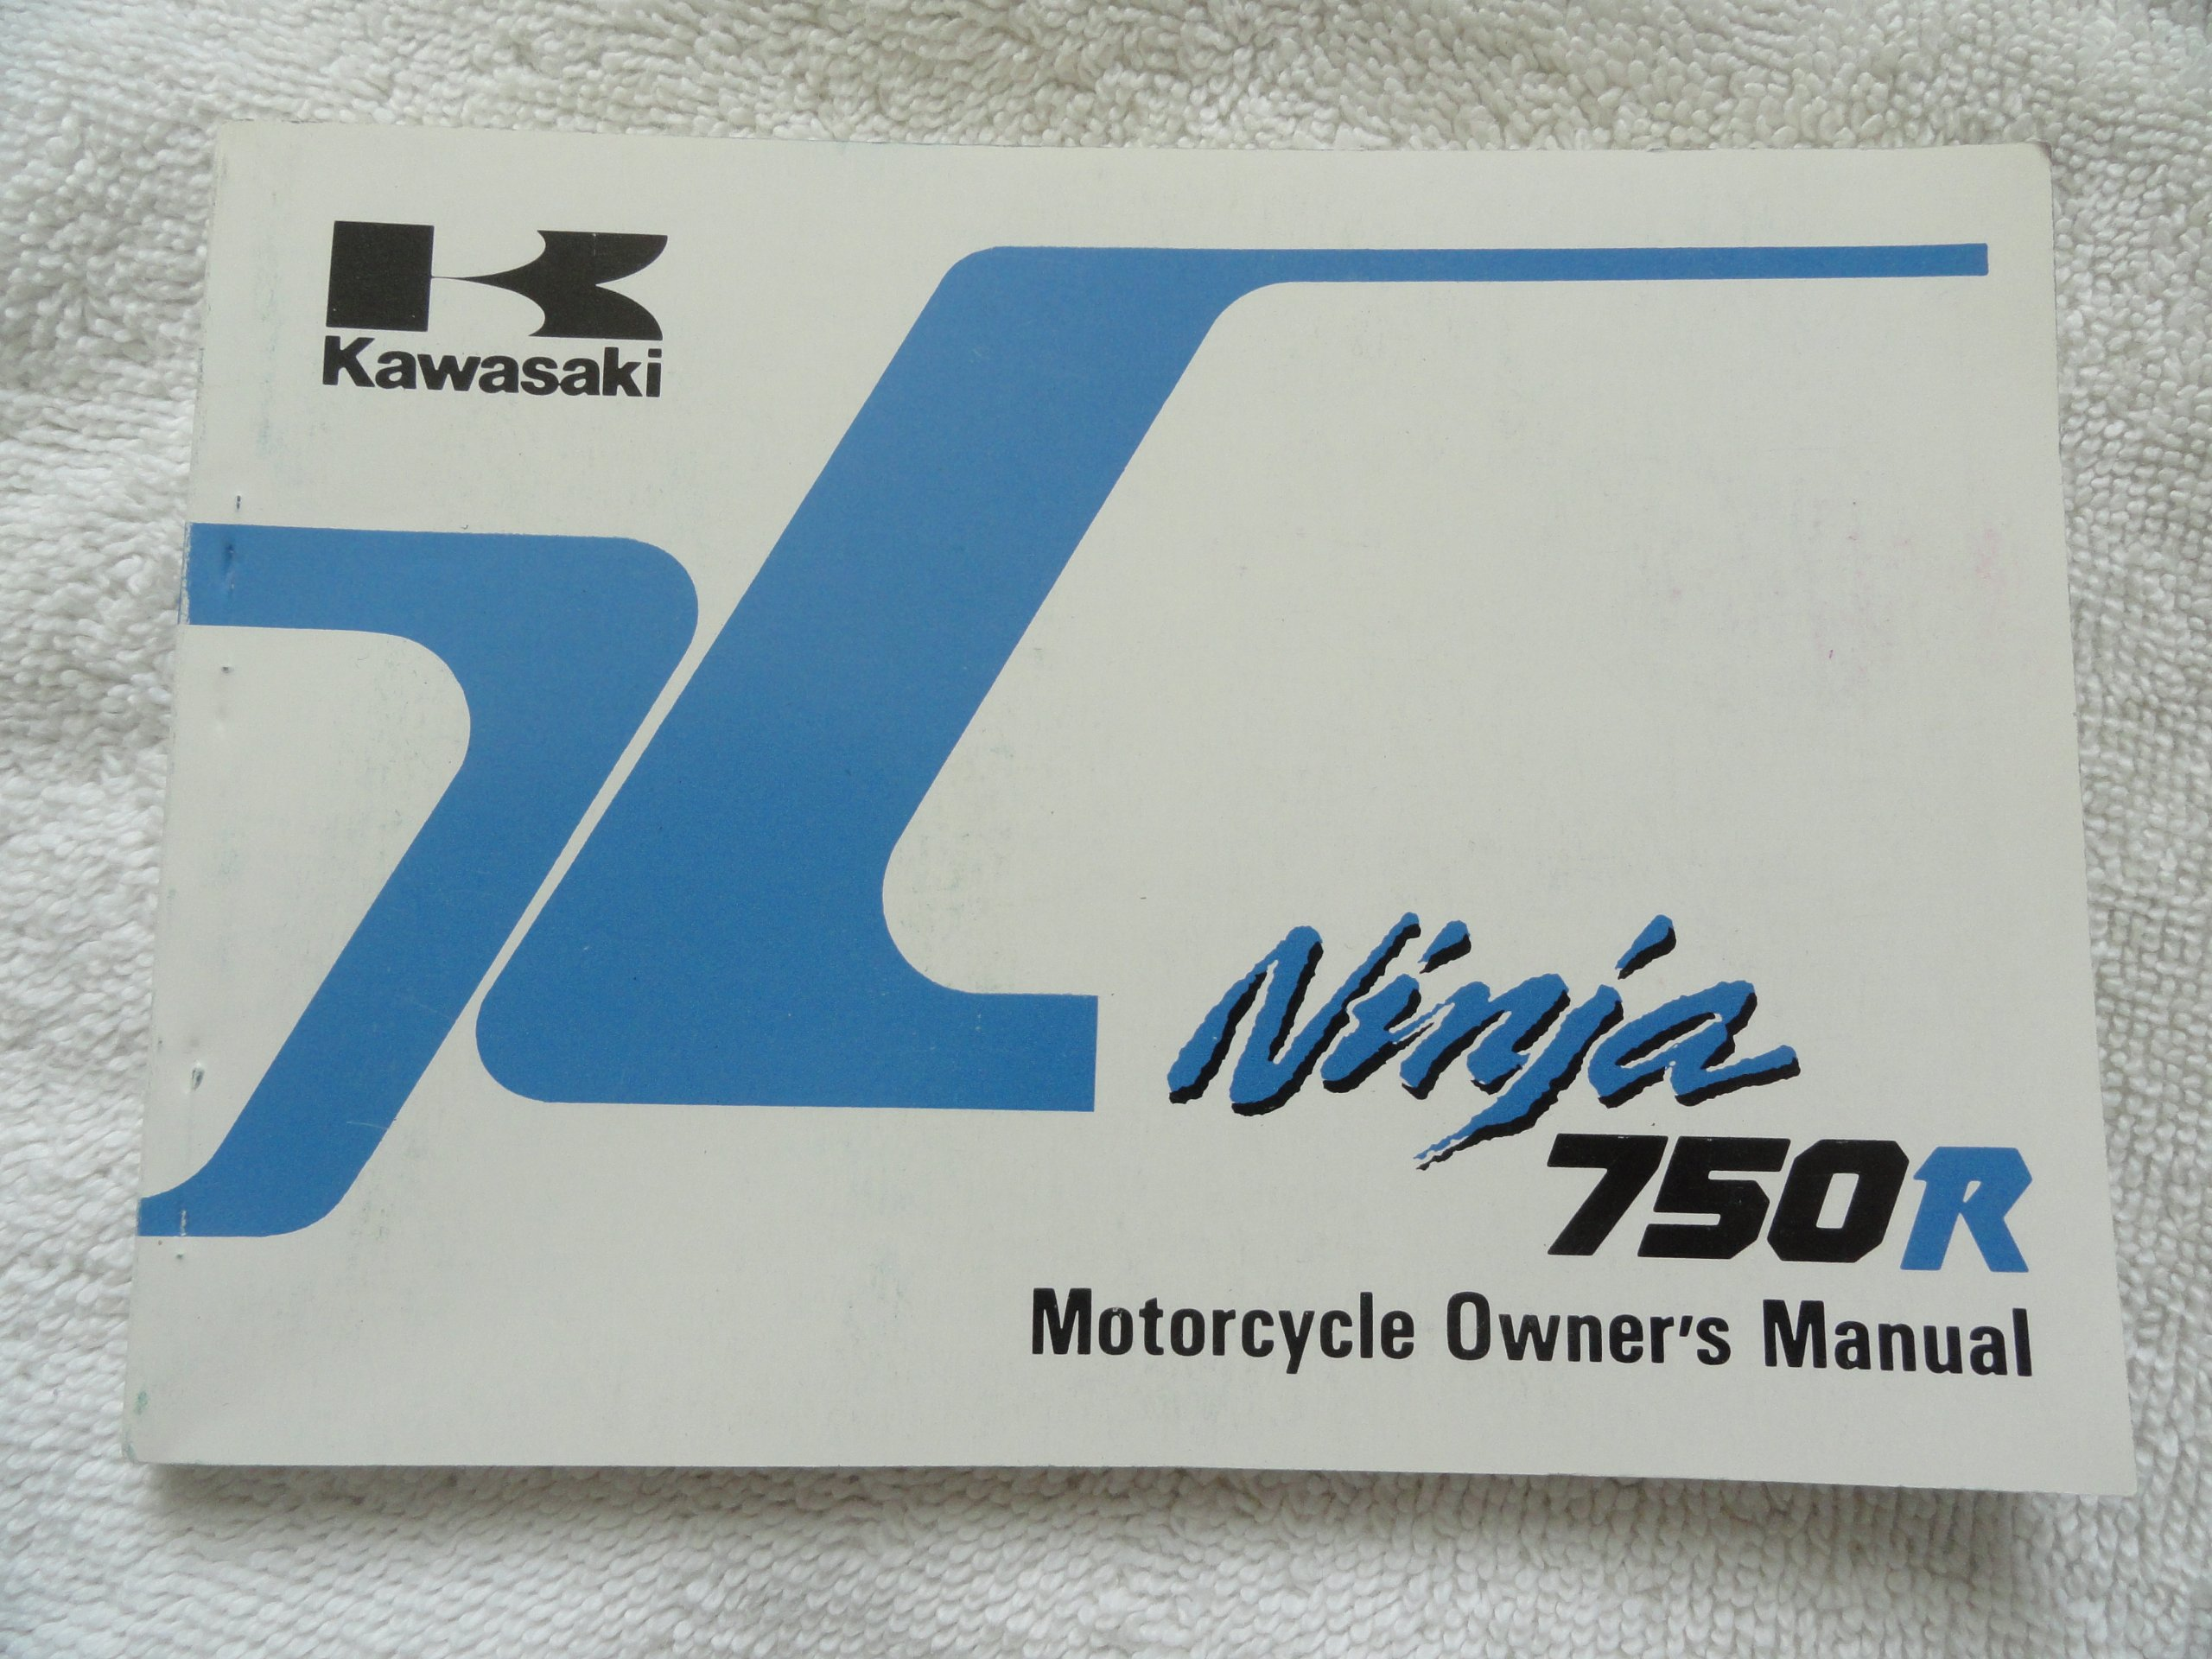 1989 1990 Kawasaki Ninja 750 R Owners Manual ZX 750 F4 ...